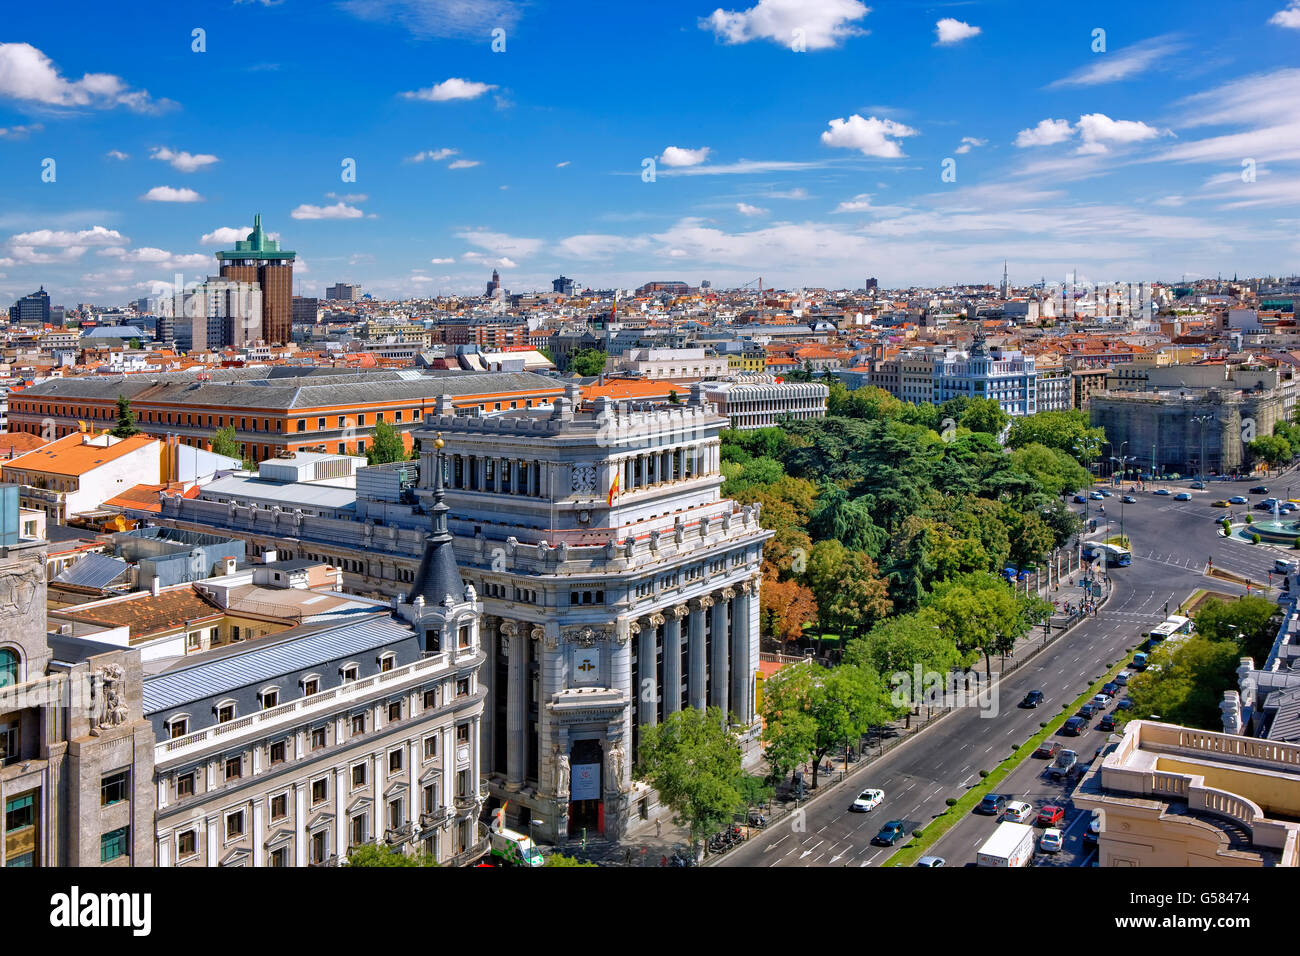 Overview of Calle de Alcala and Madrid Skyline - Stock Image